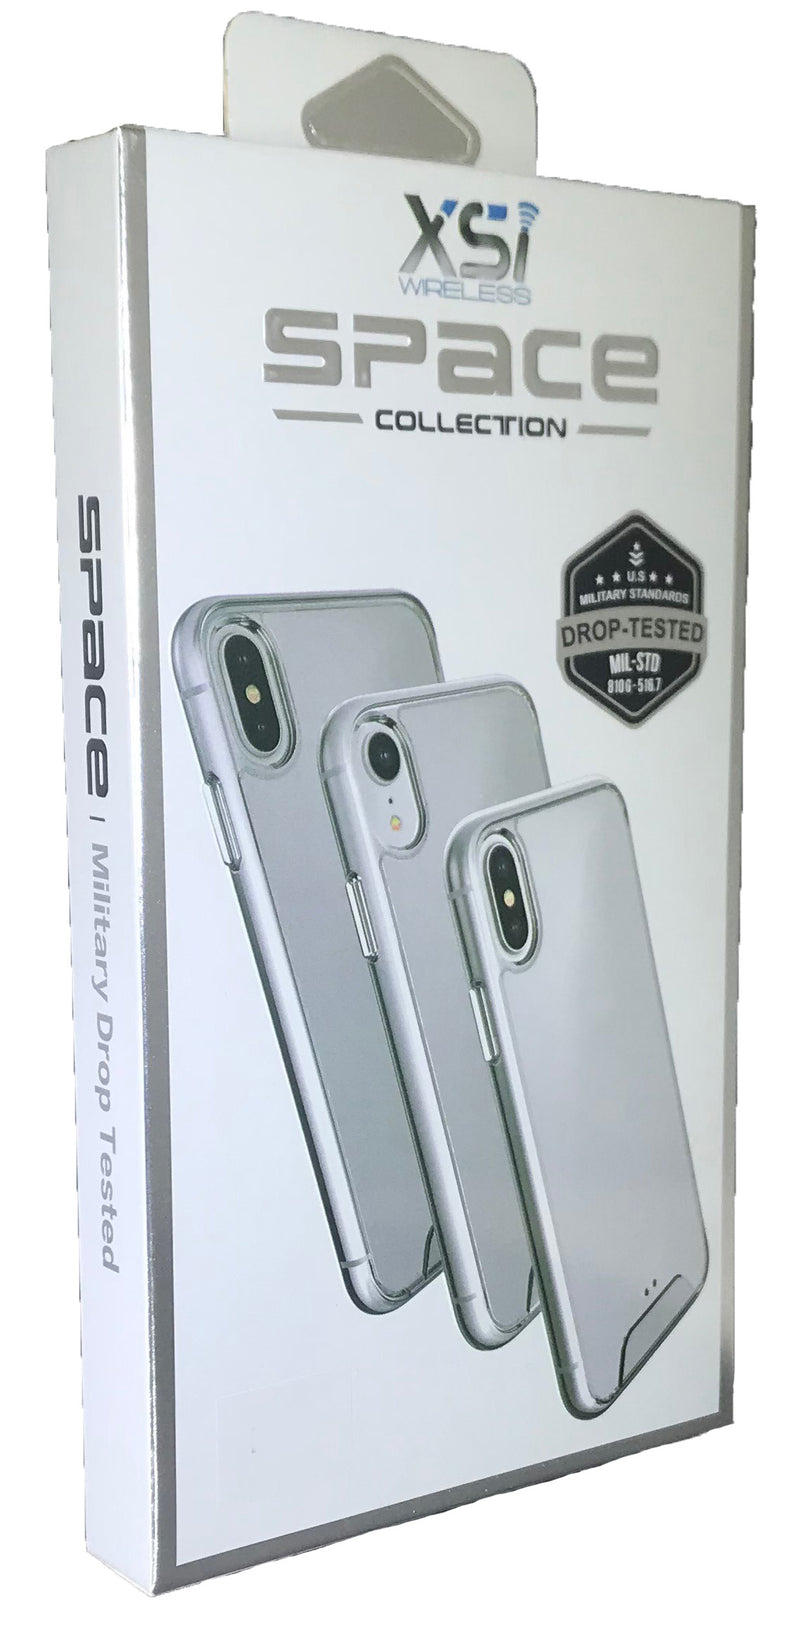 Clear iPhone XS MAX Space Case